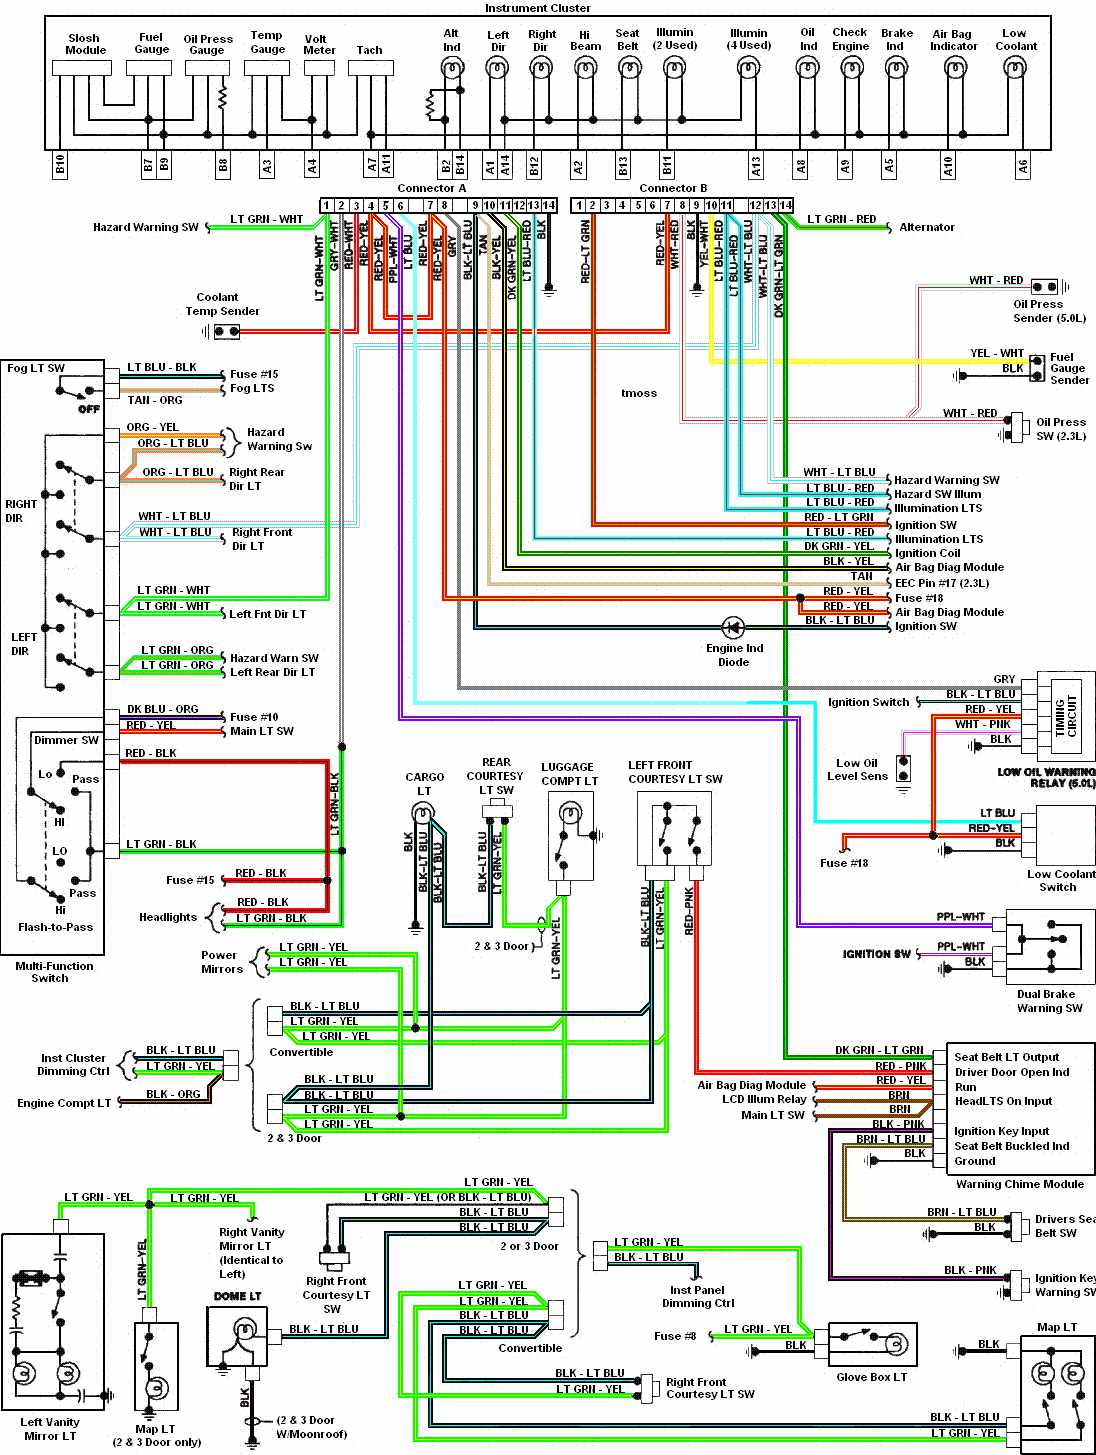 Instrument+Cluster+Wiring+Diagrams+Of+1987+Ford+Mustang+3rd+Generation 1970 mustang wiring diagram pdf 1967 mustang wiring diagram pdf 2006 ford mustang wiring harness diagram at edmiracle.co